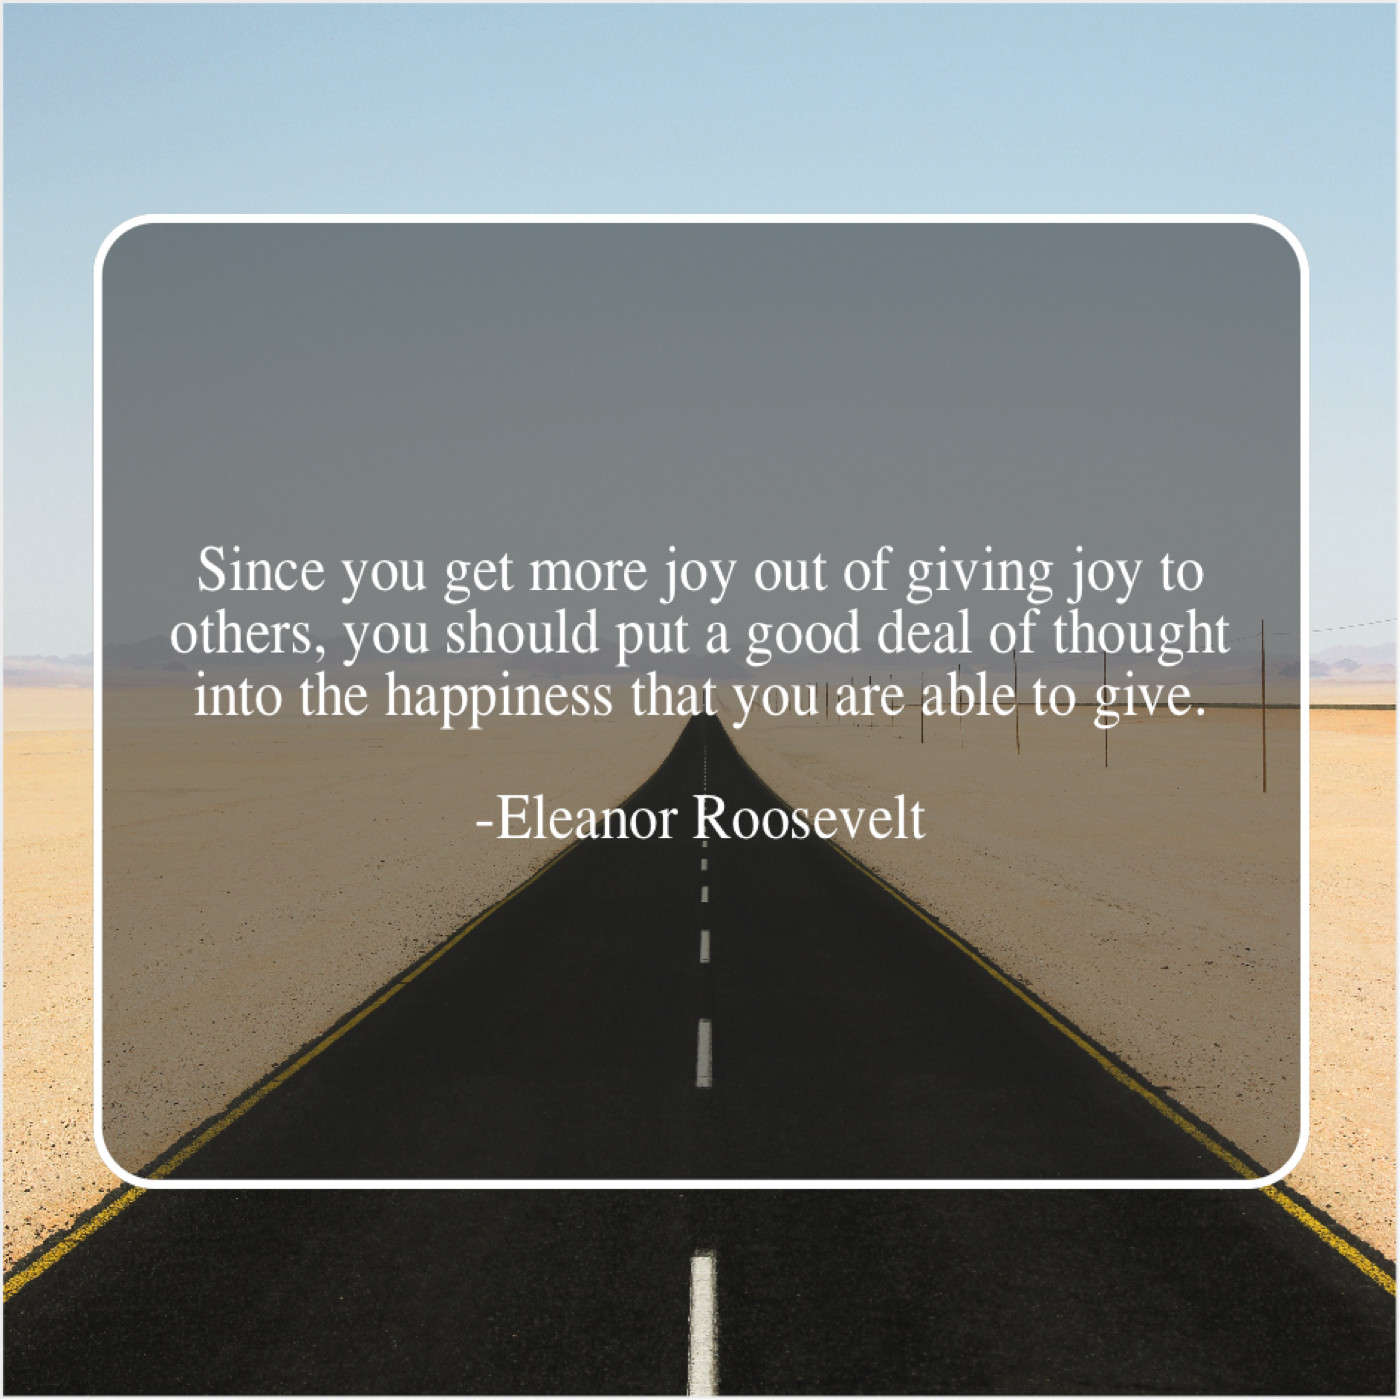 "Eleanor Roosevelt quote ""Since you get more joy out of giving joy to others, you should put a good deal of thought into the happiness you are able to give."""